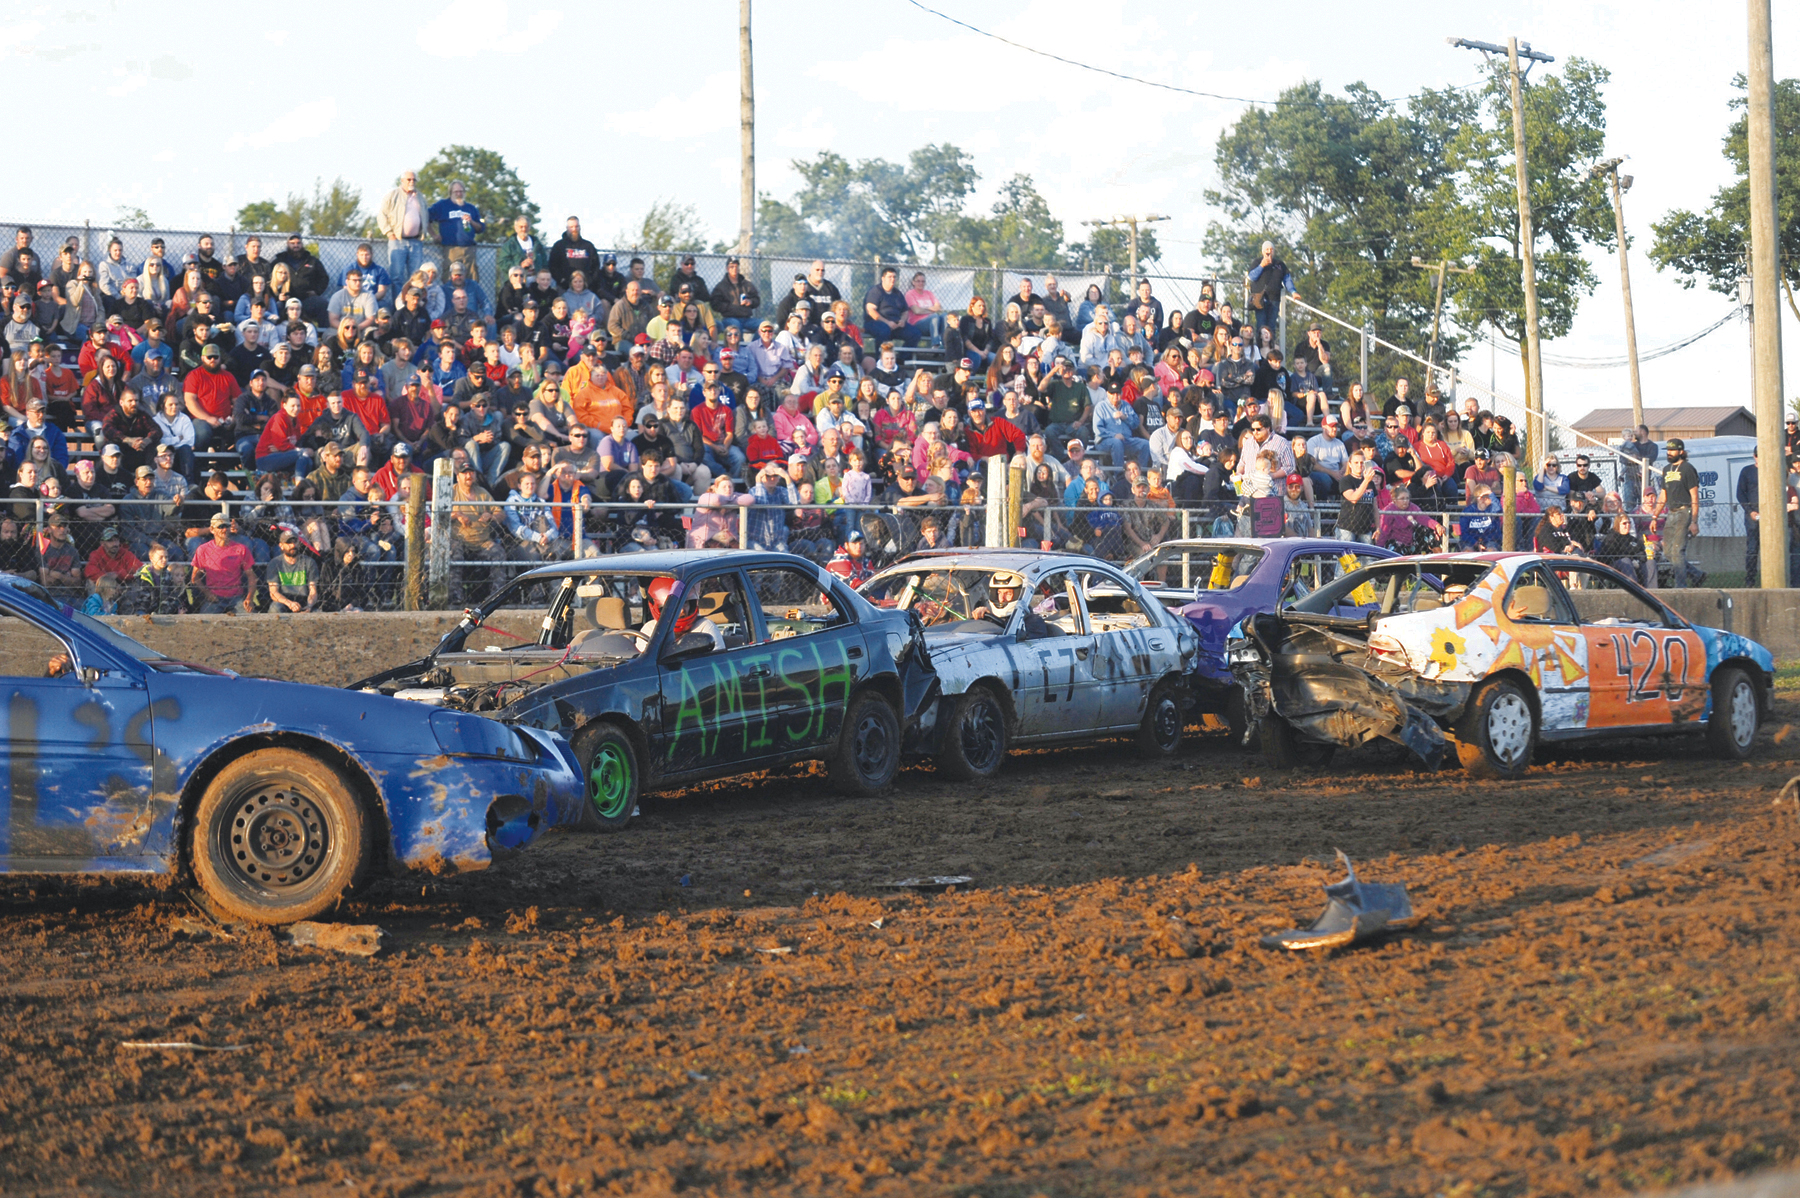 Beautiful Chaos Demolition Derby At The County Fair The Advocate Messenger The Advocate Messenger